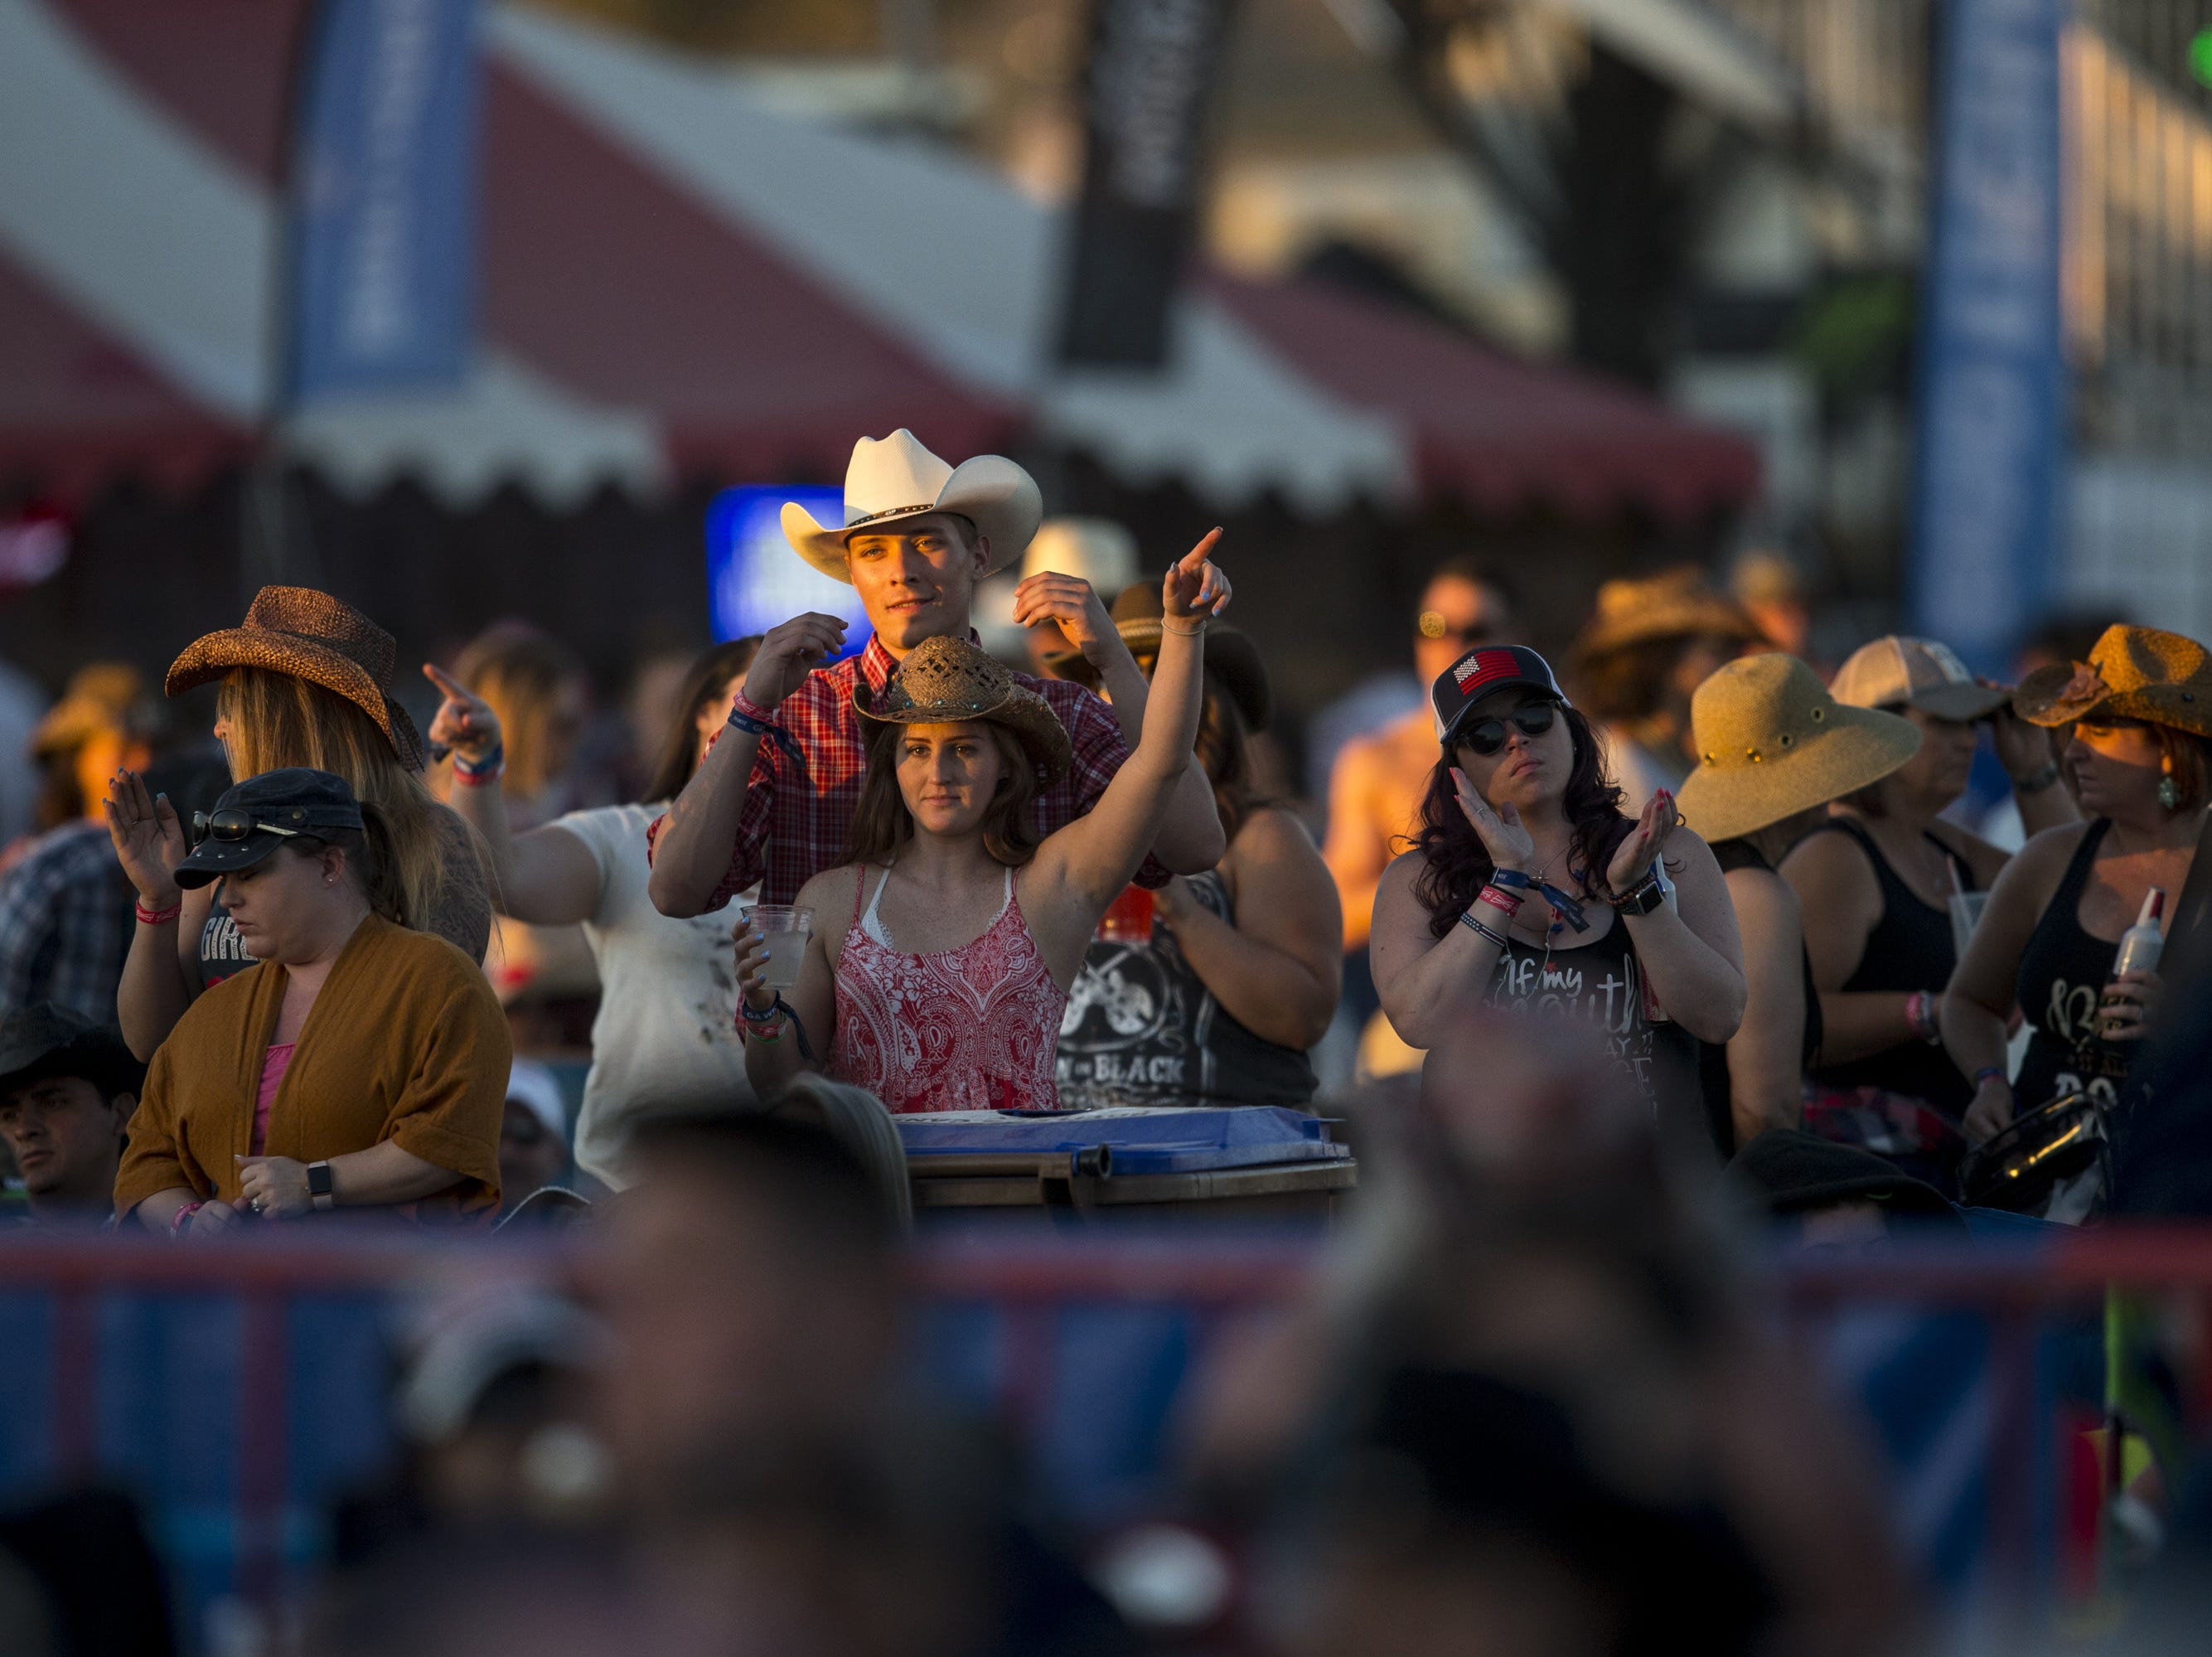 Fans watch Lonestar perform on April 13, 2019, during Day 3 of Country Thunder Arizona in Florence, Arizona.